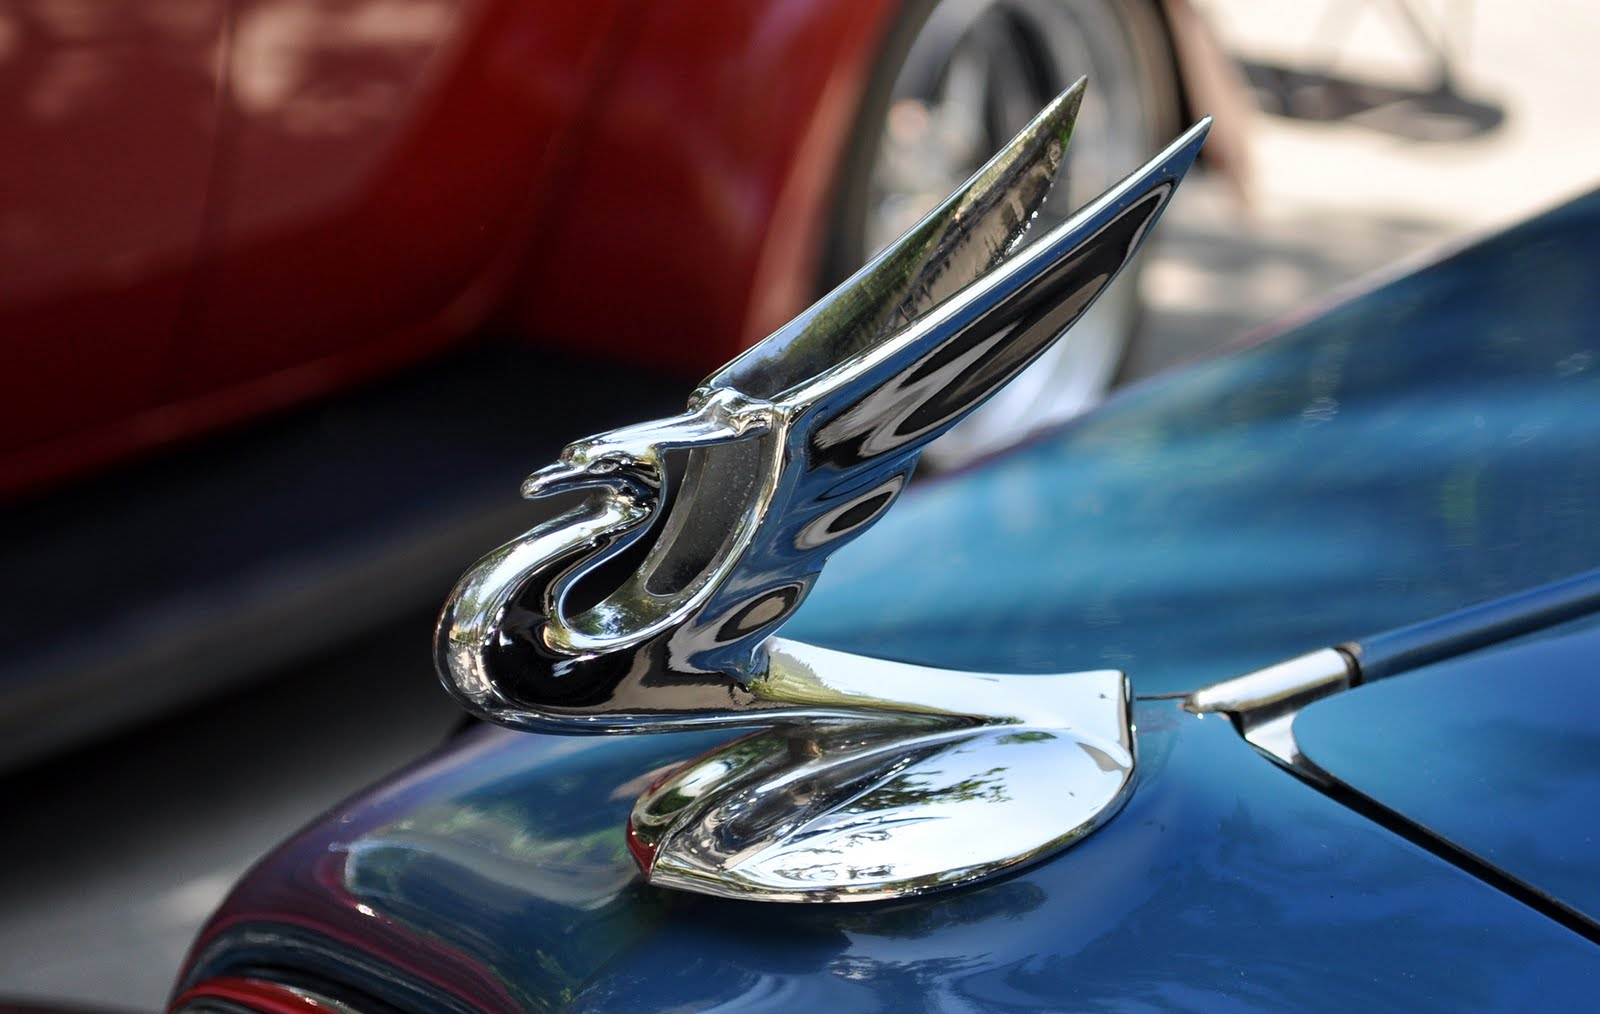 of this hood ornament.